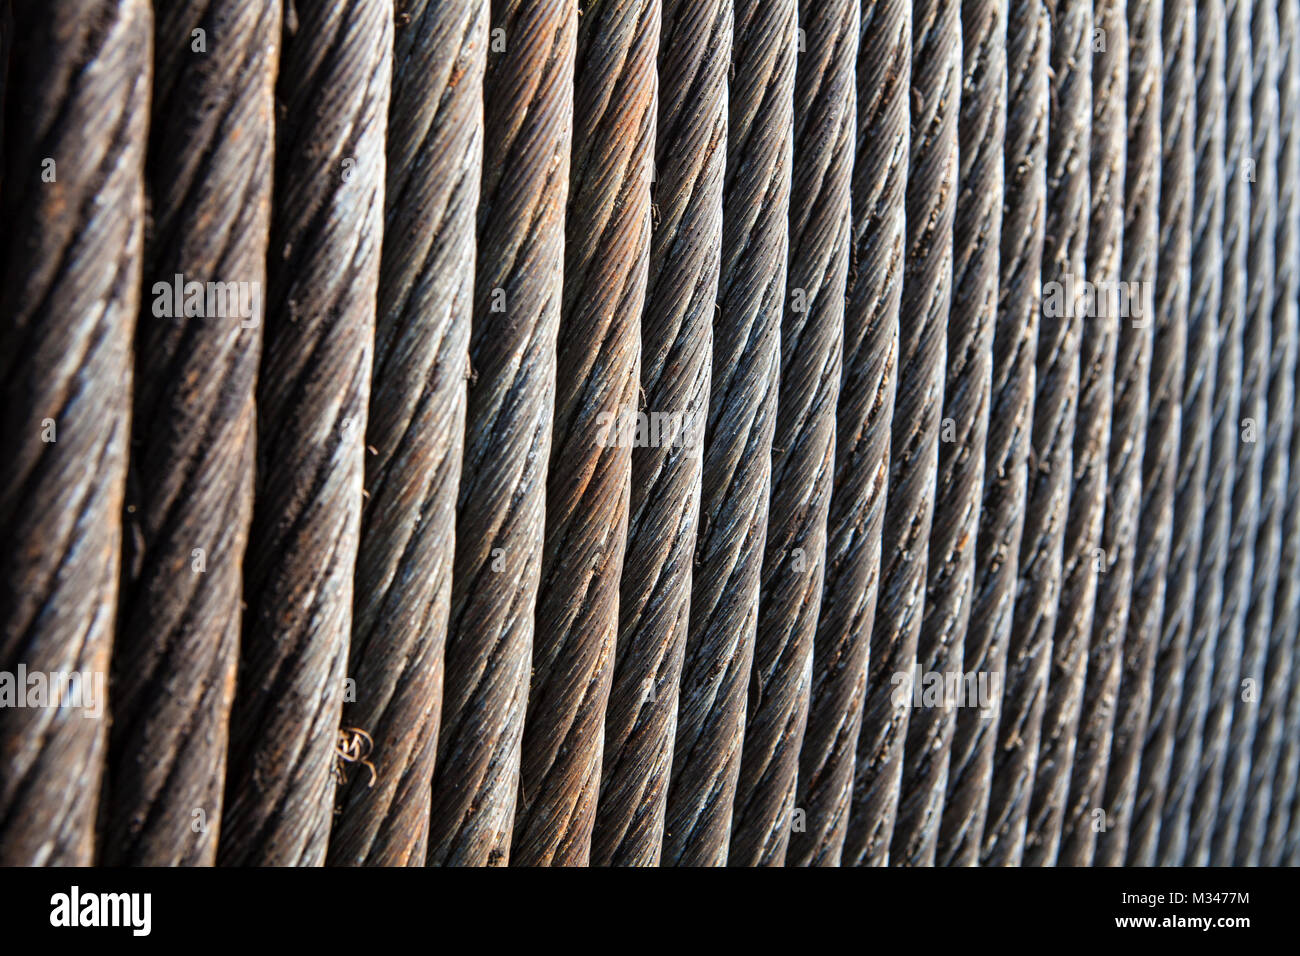 Close-up of old steel cable - Stock Image